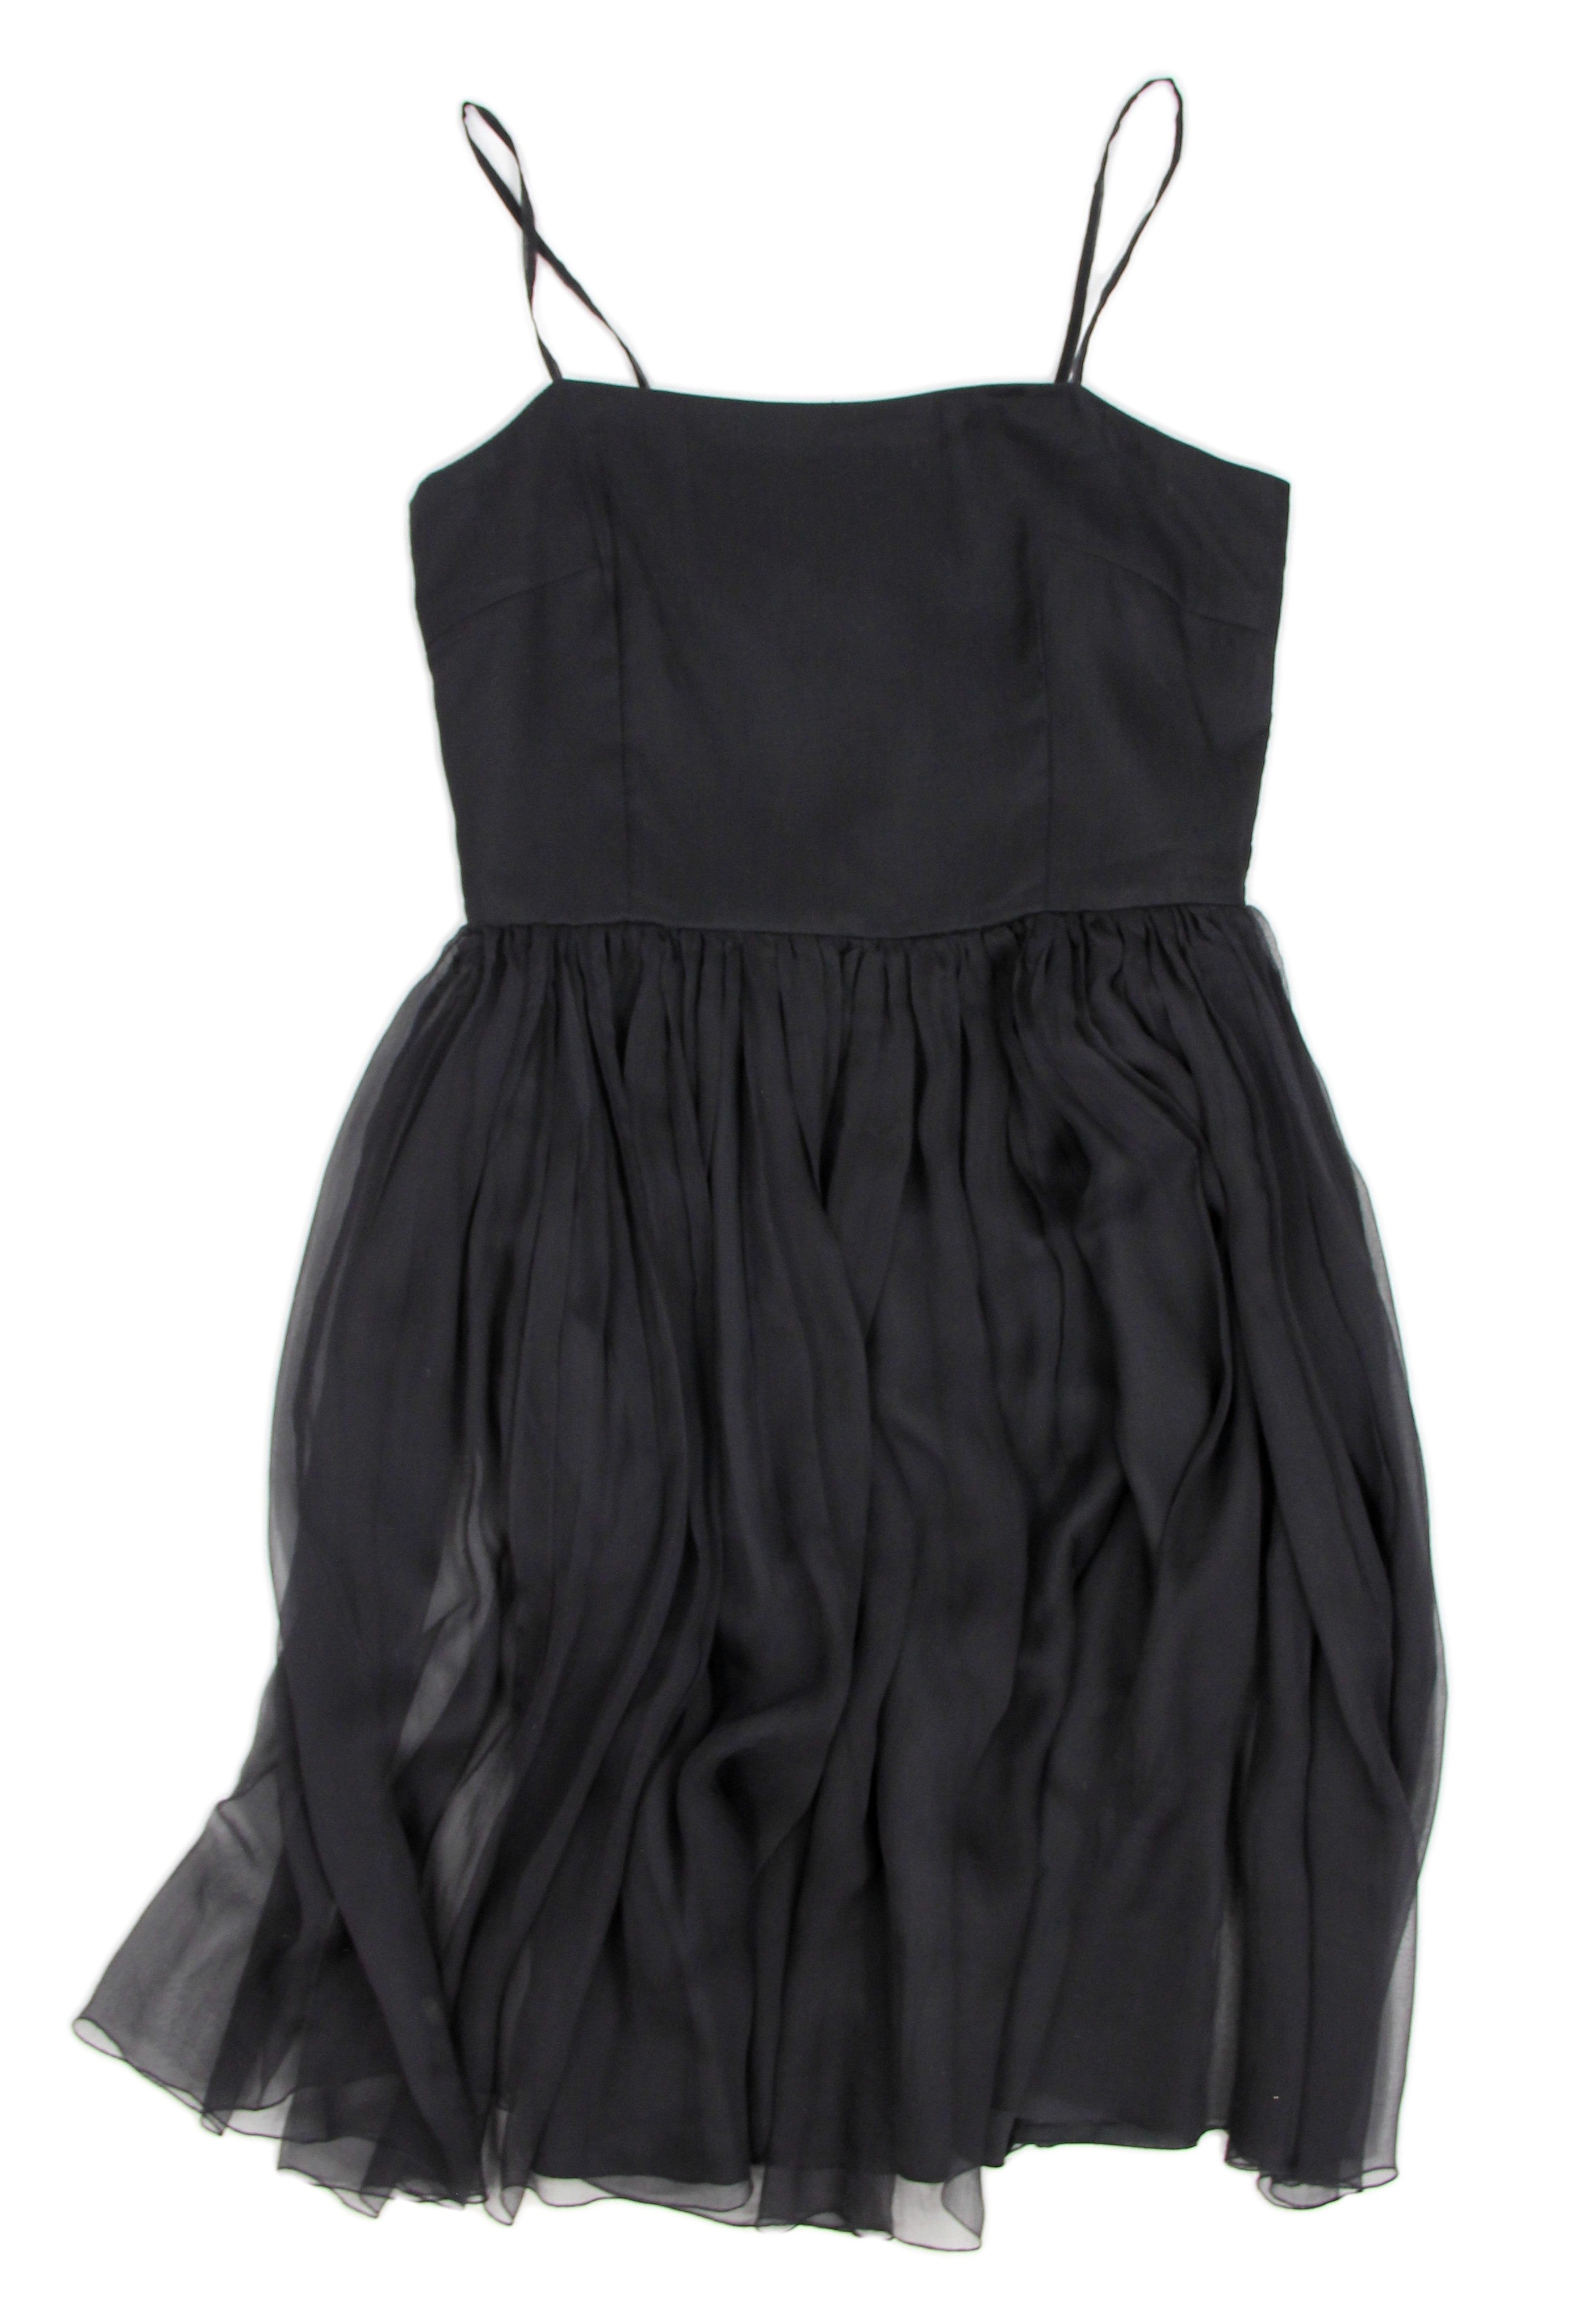 Marimekko by Samu-Jussi Koski Black Silk Cocktail Dress, SIZE S